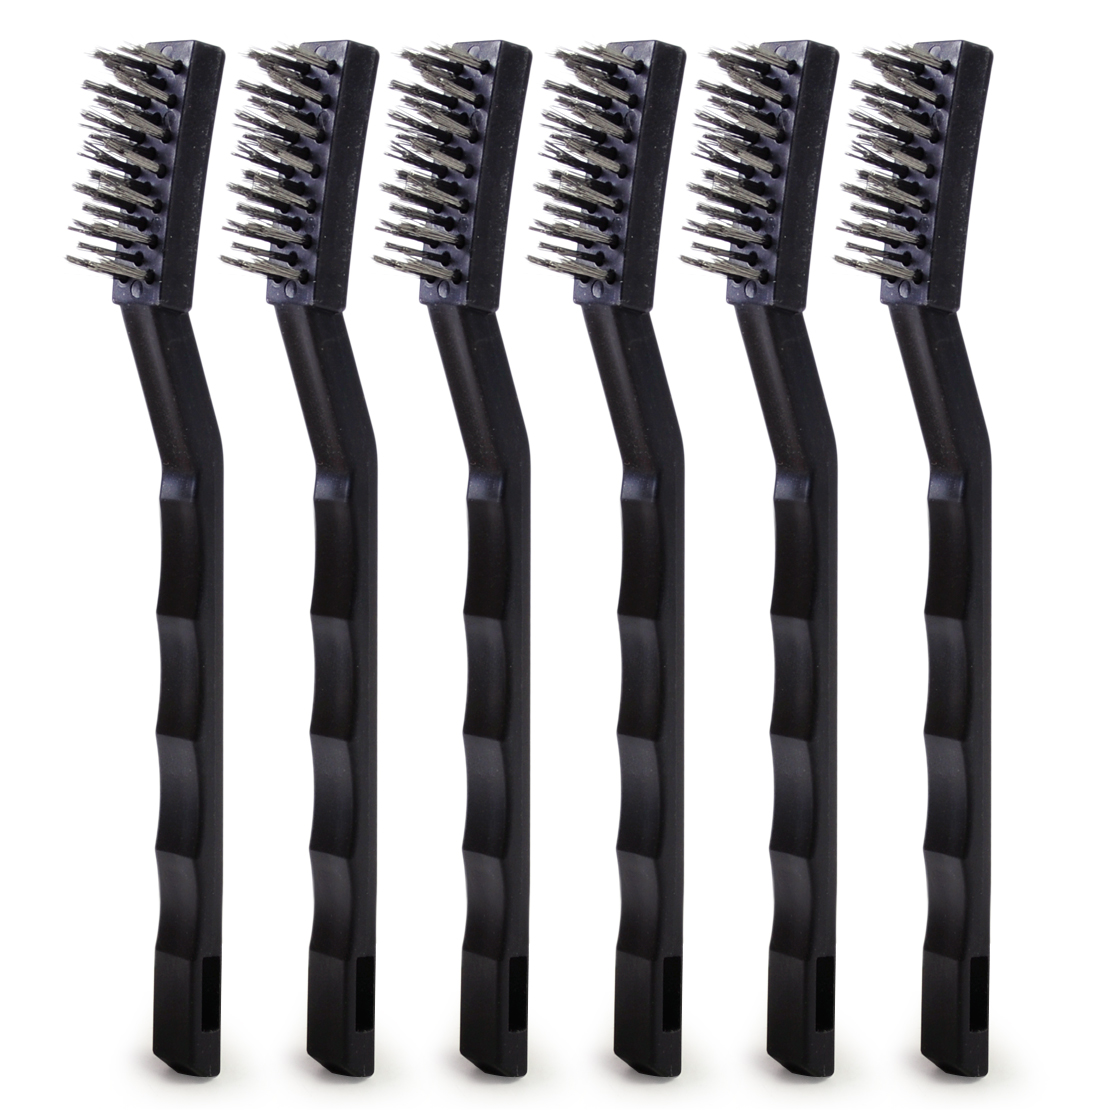 LETAOSK 6pcs Steel Wire Brush Rust Sparks Brush Remover Cleaning Metal 17cm Polishing ToolAccessories